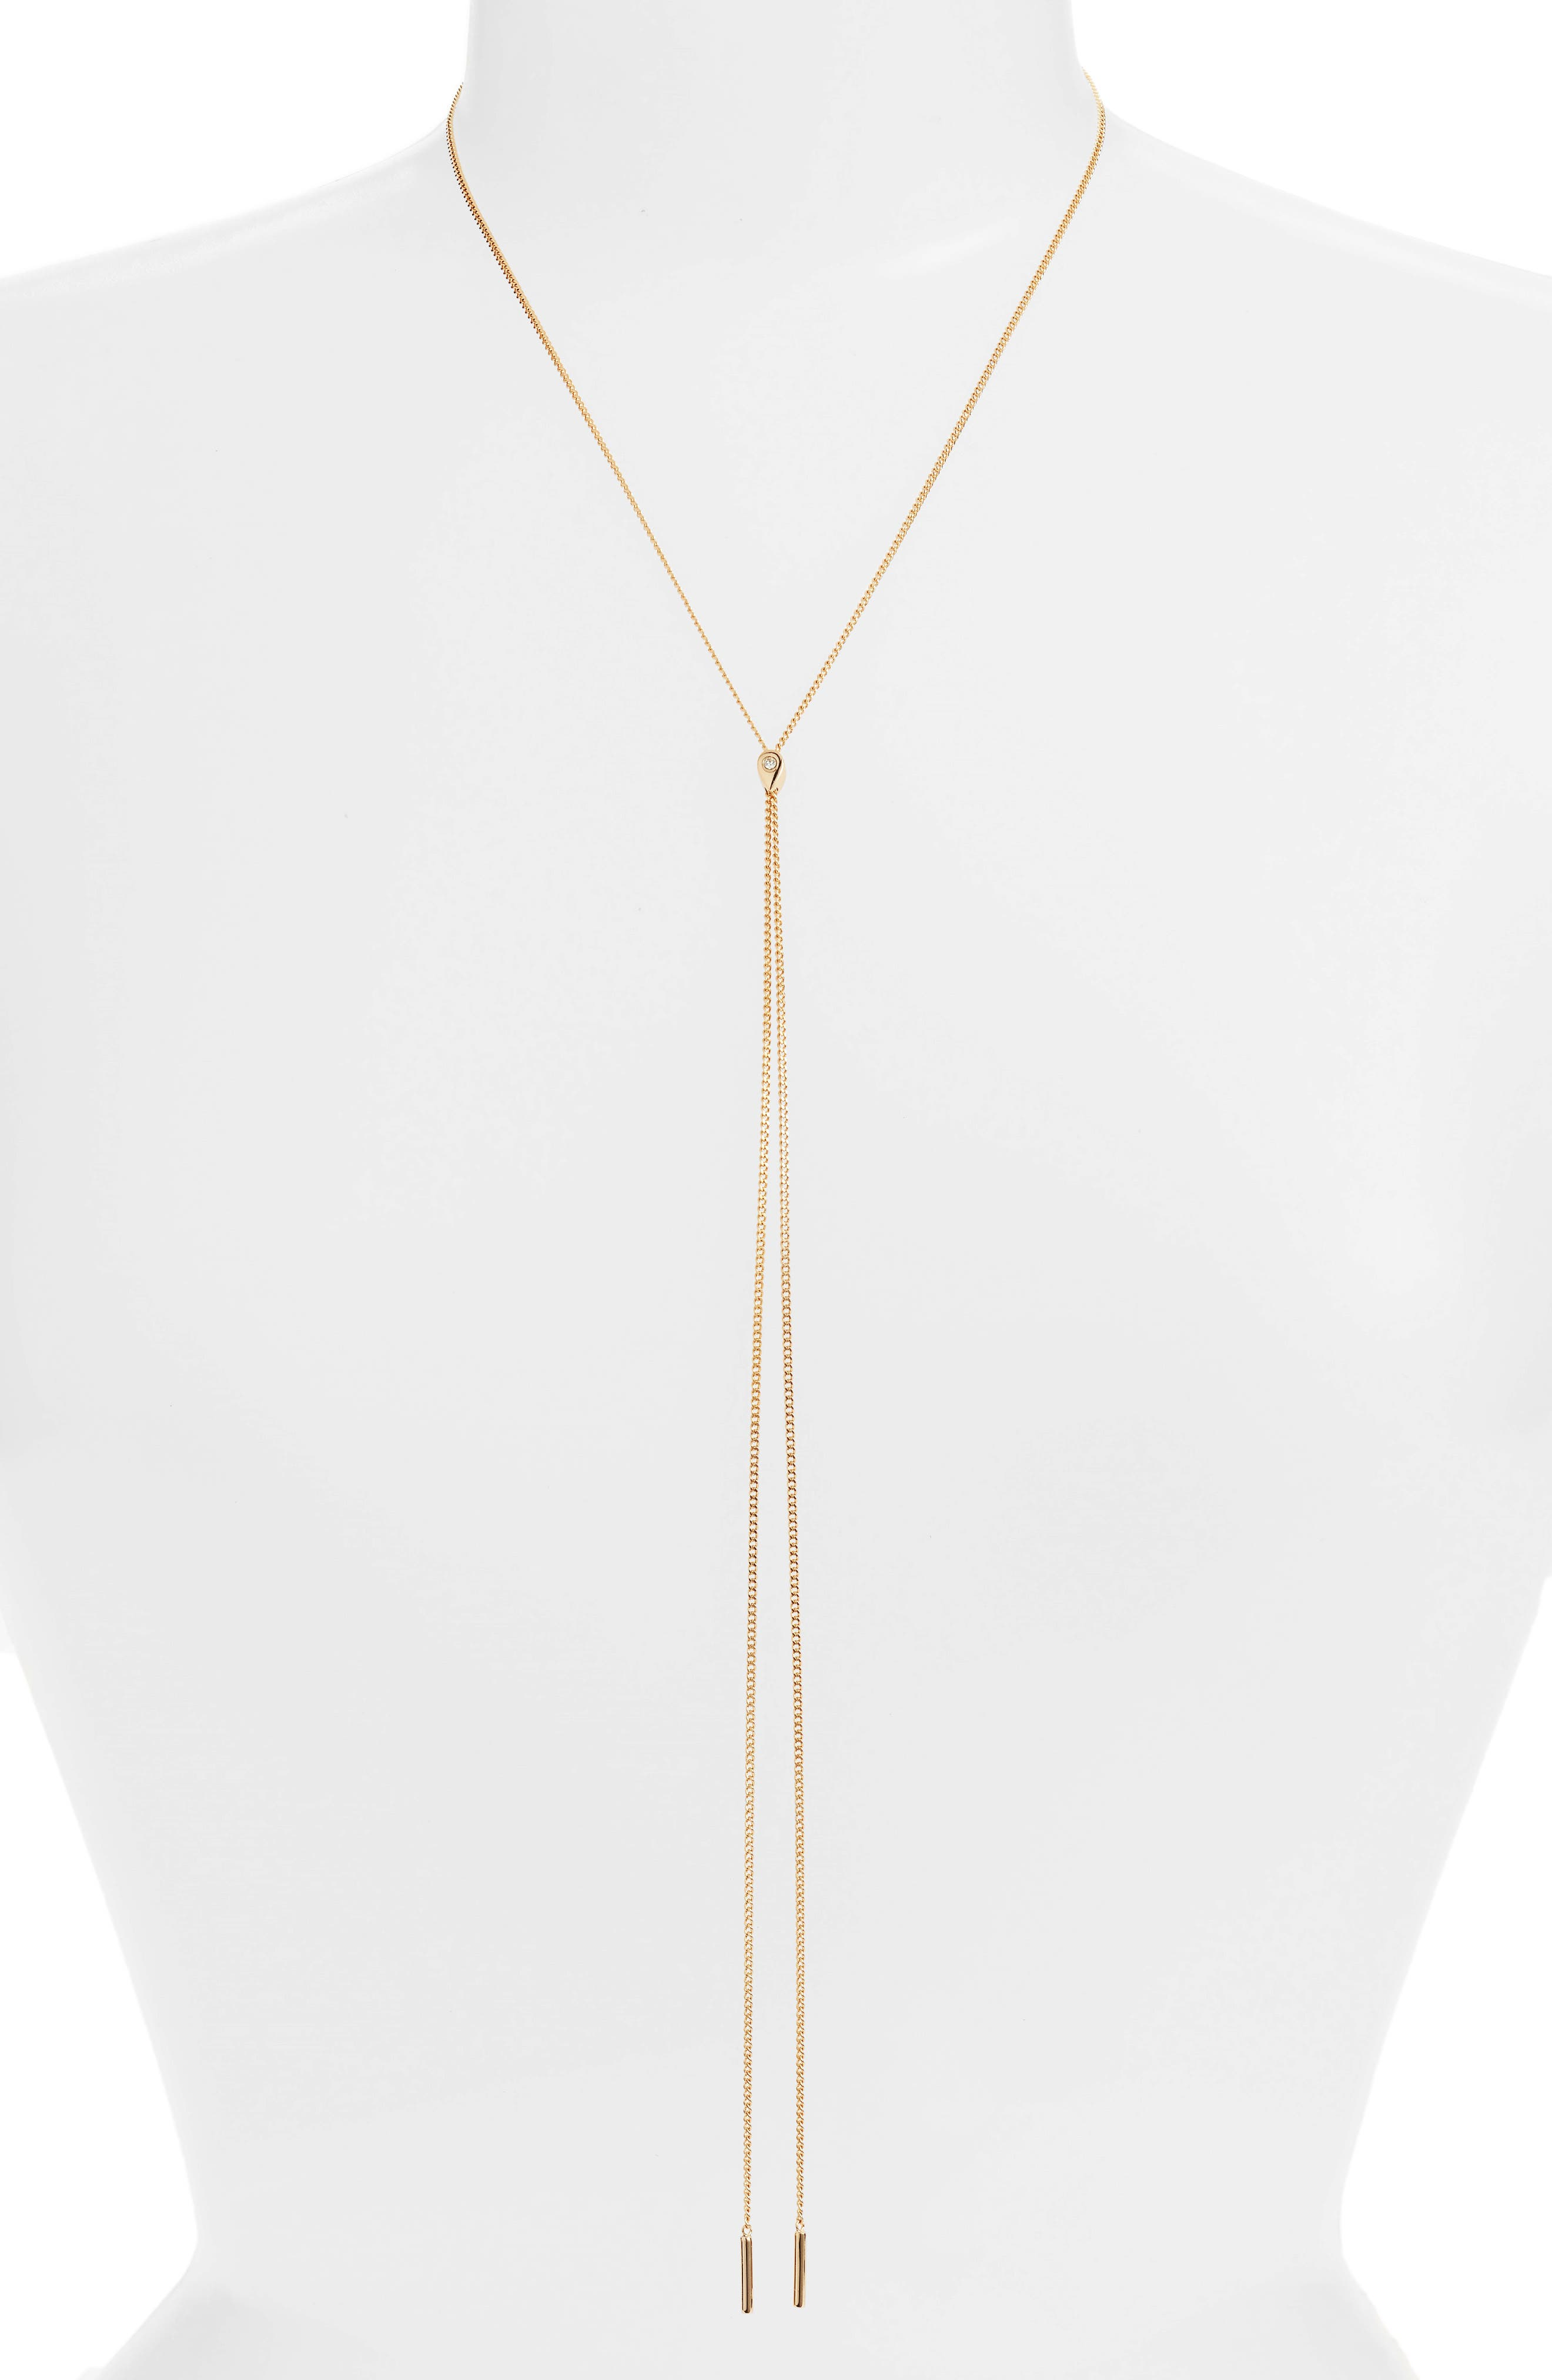 Main Image - Jules Smith Teardrop Charm Necklace